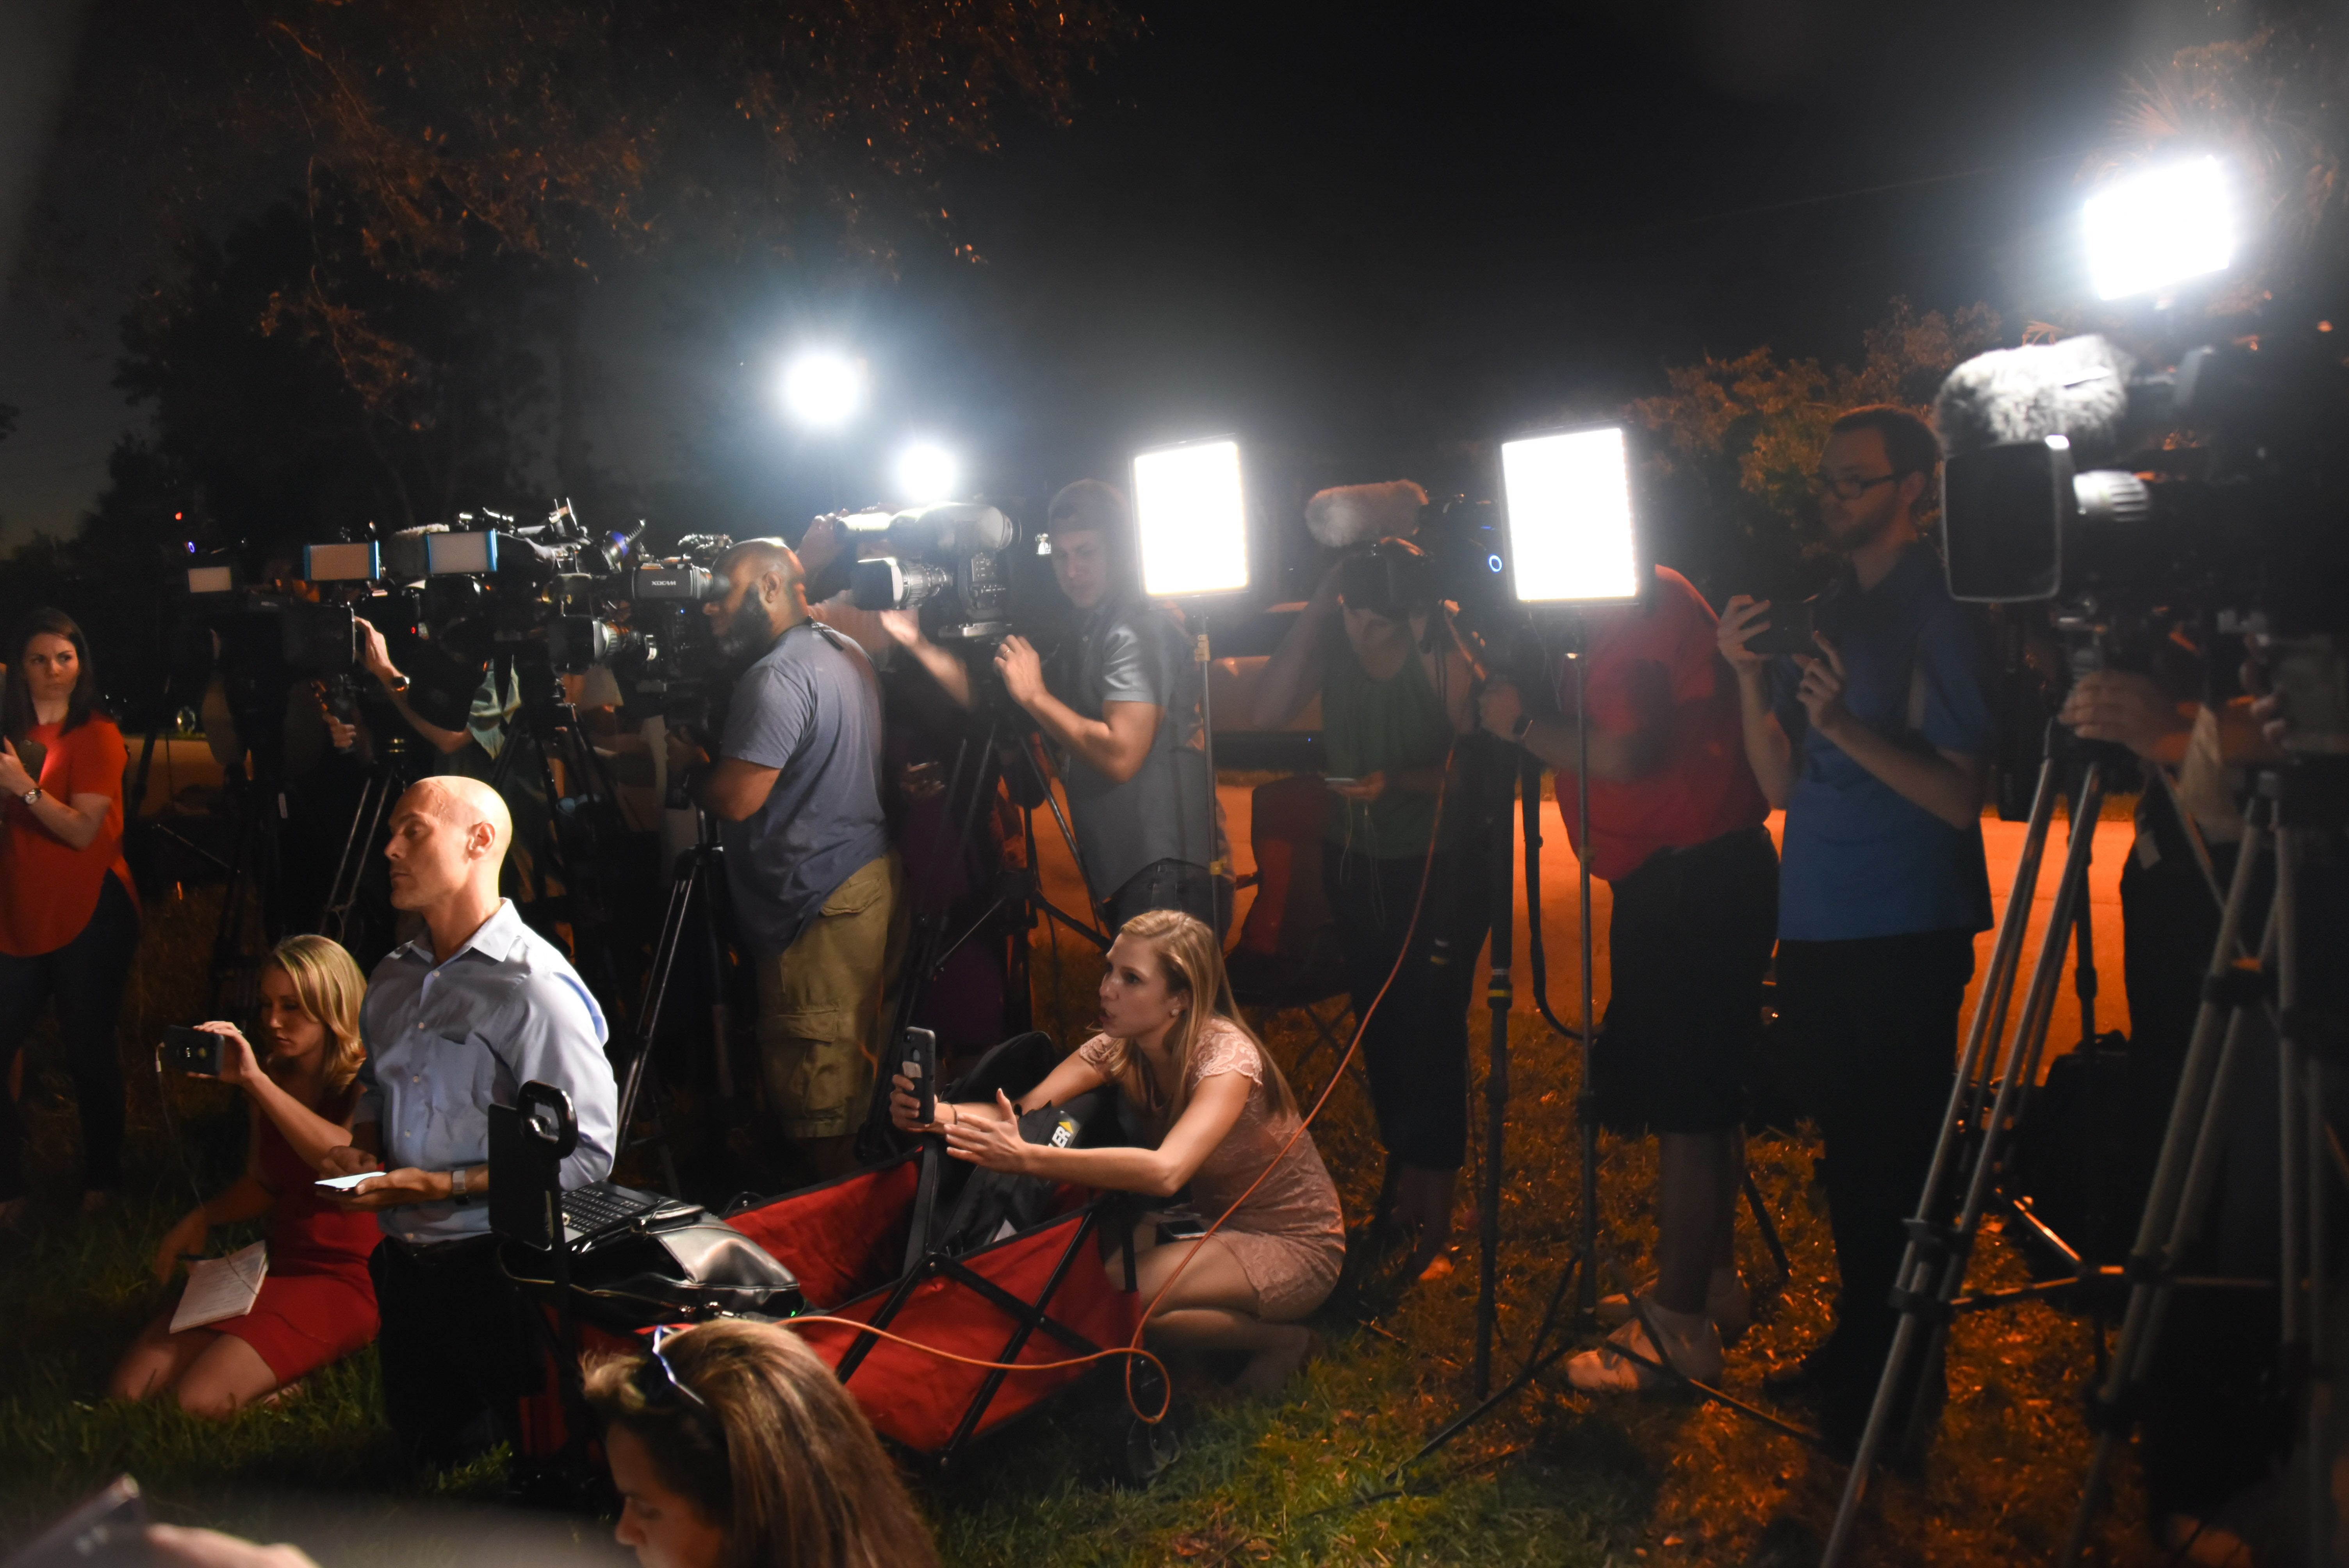 Members of the media attend a briefing at the Broward Health North Hospital, where victims of a Feb. 14 shooting at Marjory S